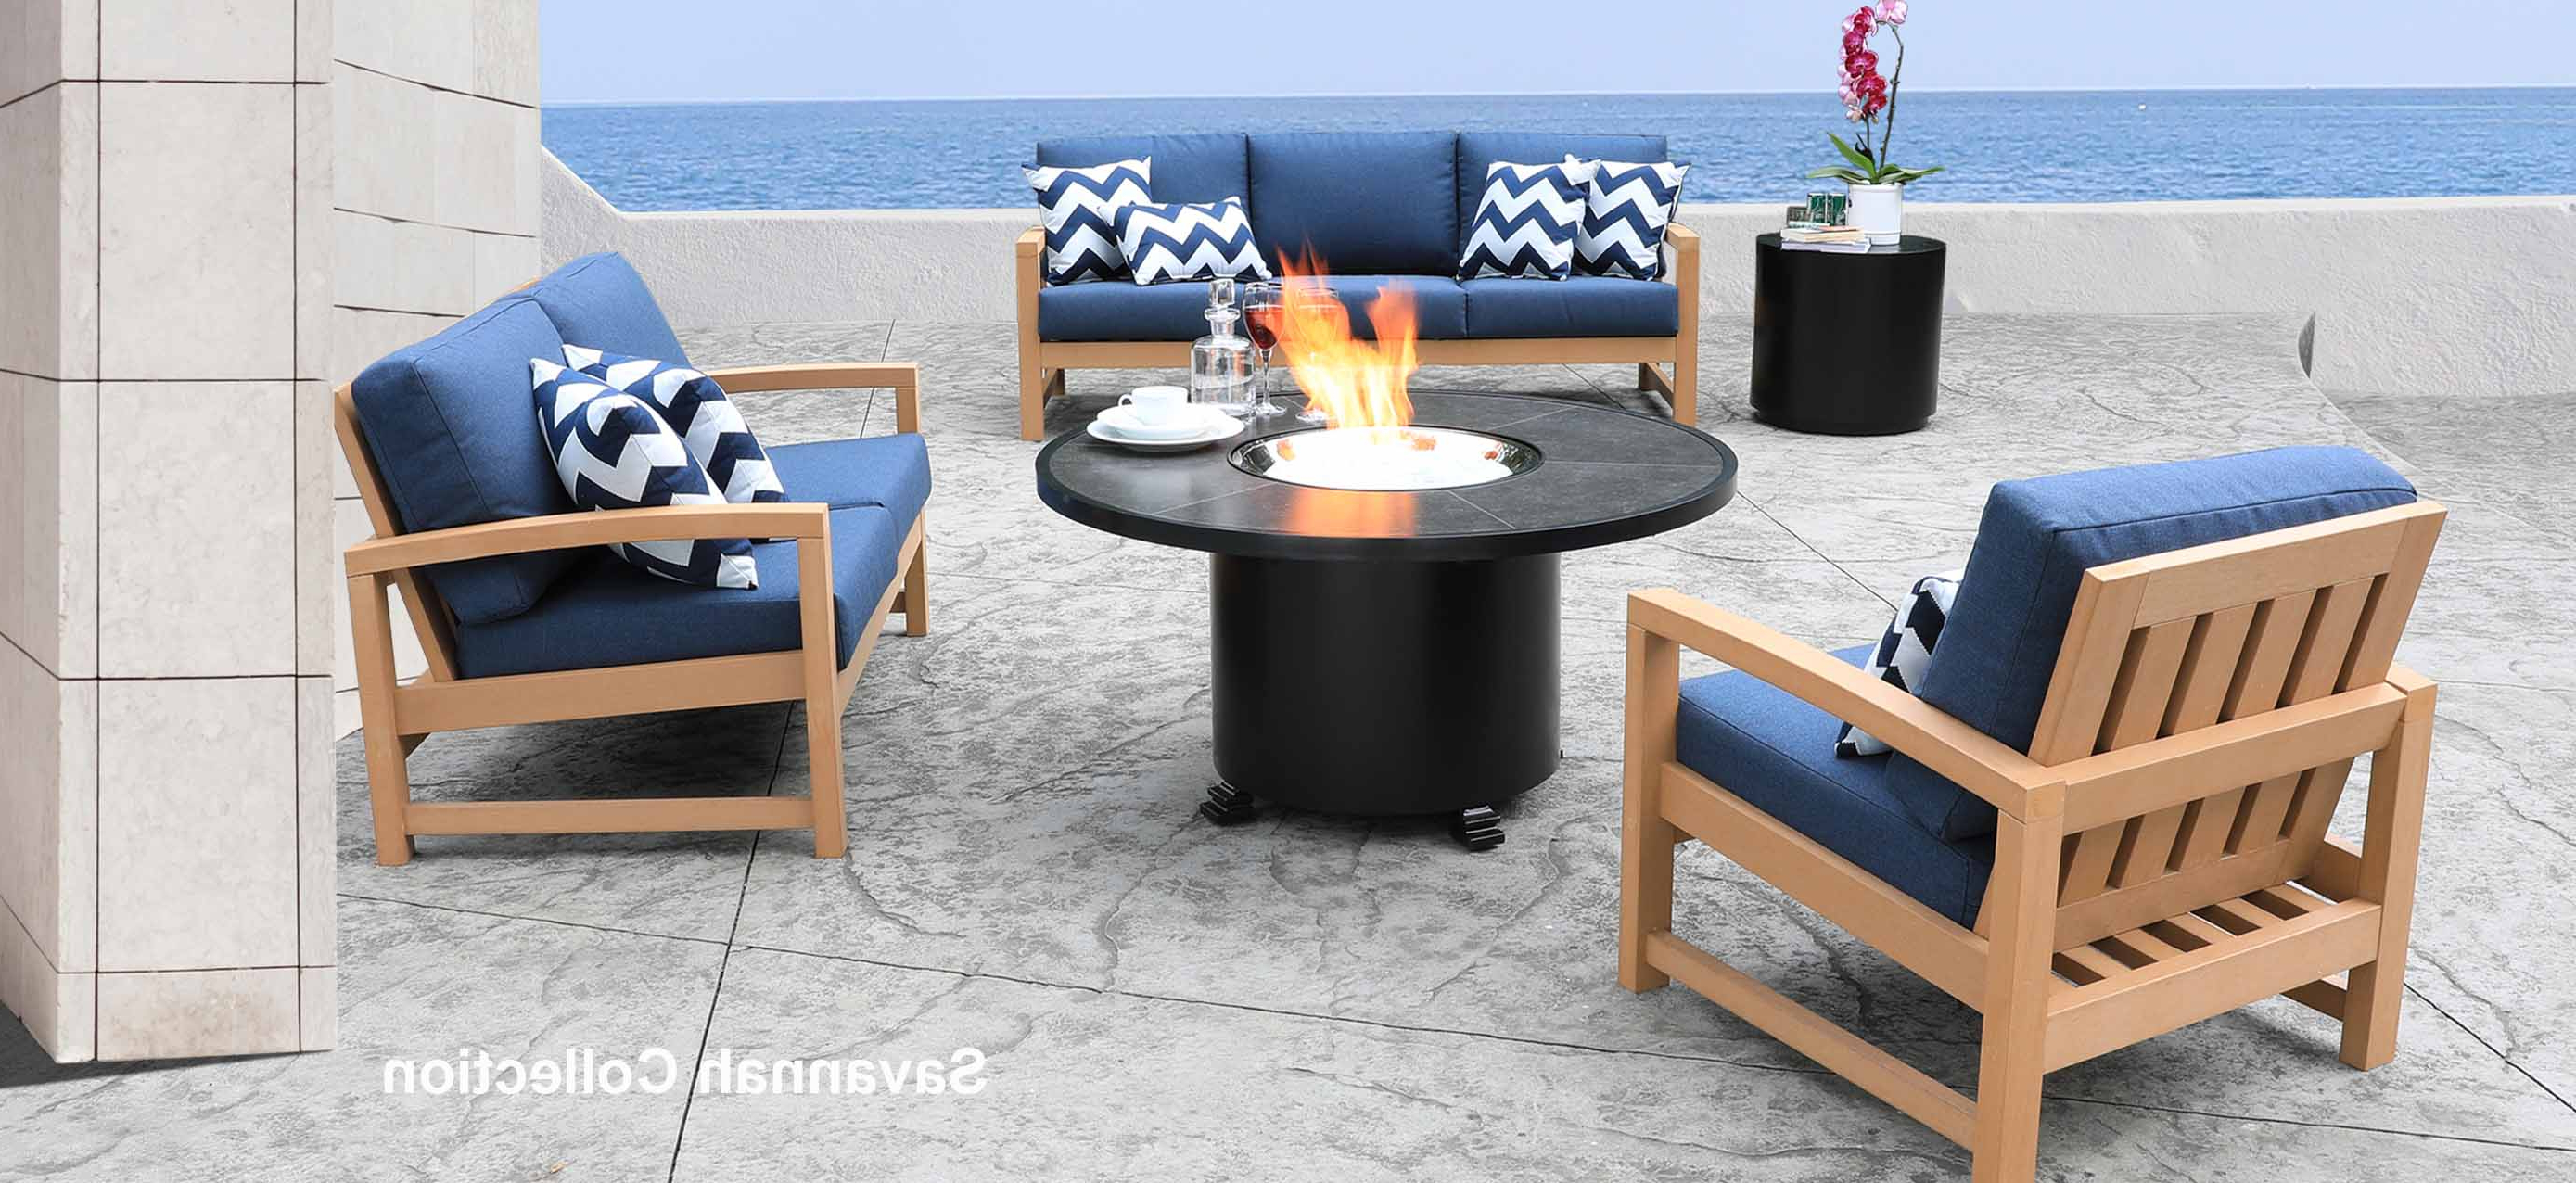 Fashionable Wood Blue And White Cushion Outdoor Chaise Lounge Chairs Pertaining To Shop Patio Furniture At Cabanacoast® (View 25 of 25)